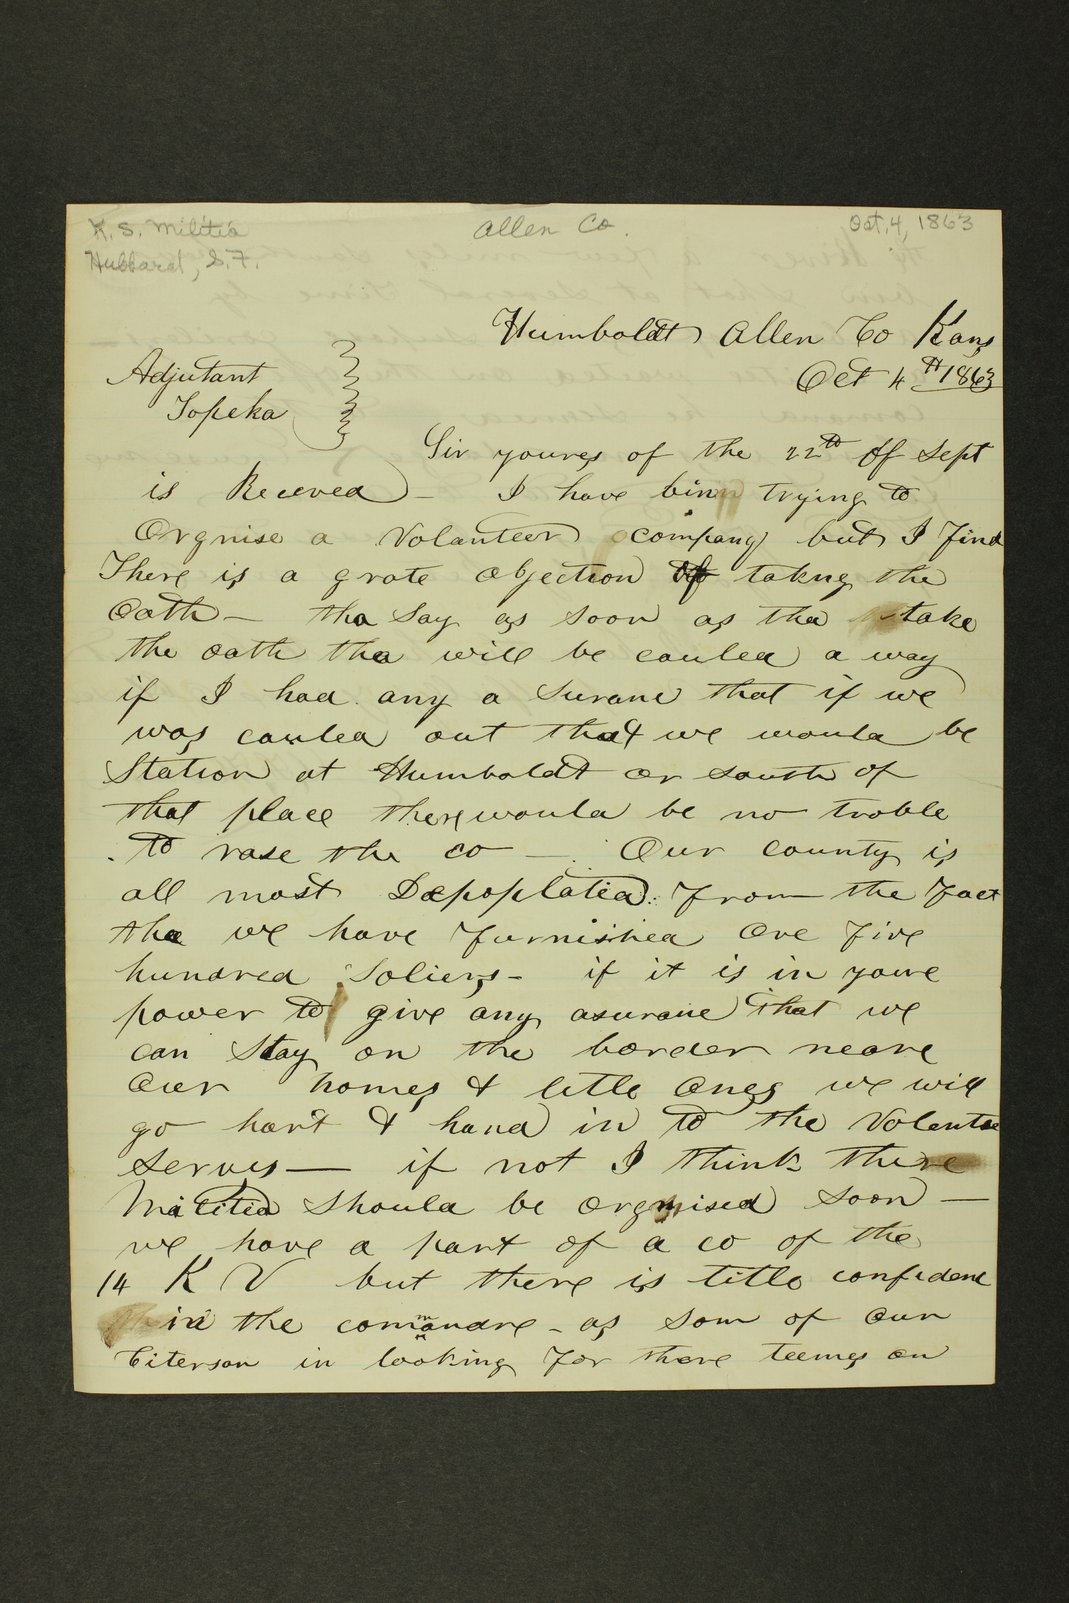 Kansas State Militia miscellaneous papers by county - 1 [Allen County]